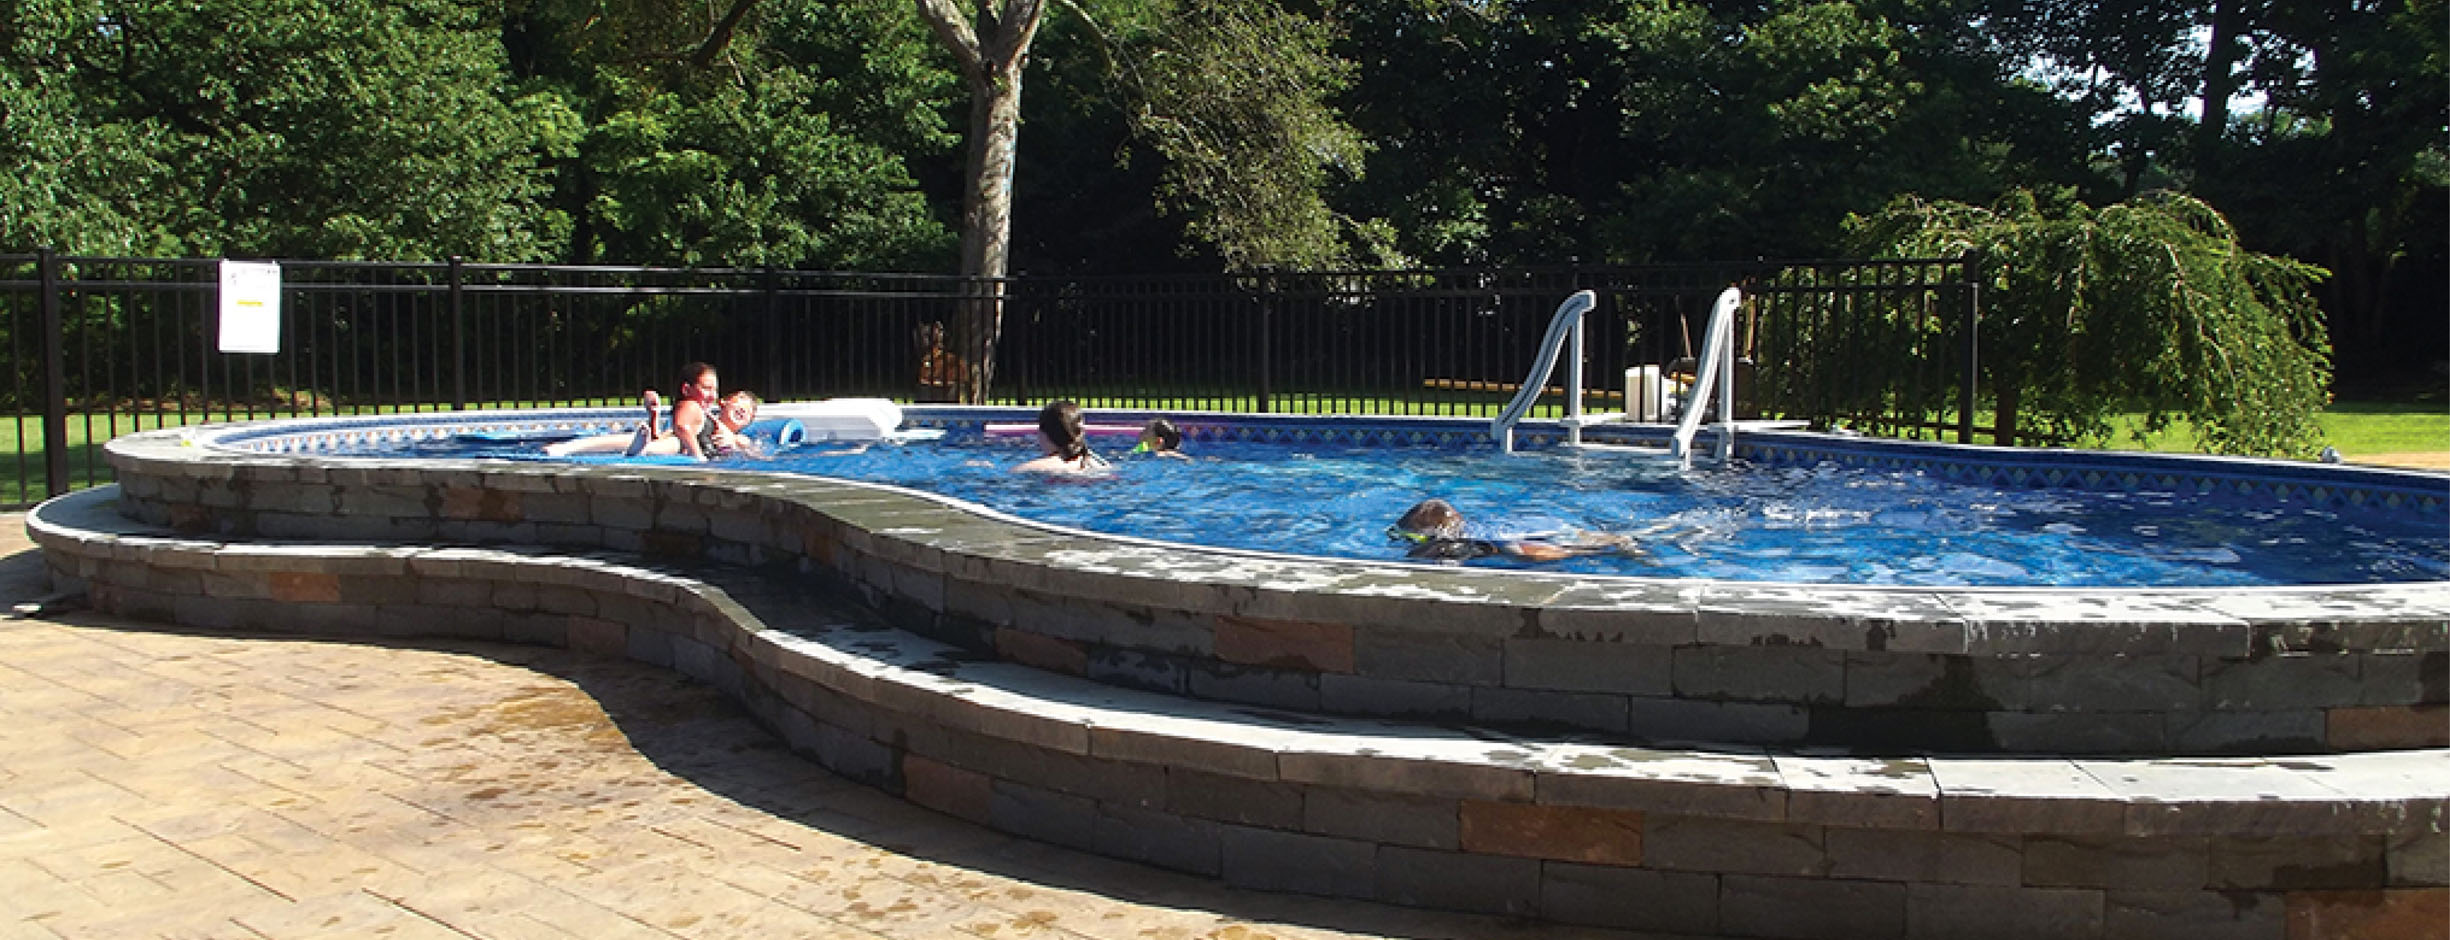 Semi Inground Pool Ideas | Semi Inground Pools Nj | Deepest Above Ground Pool